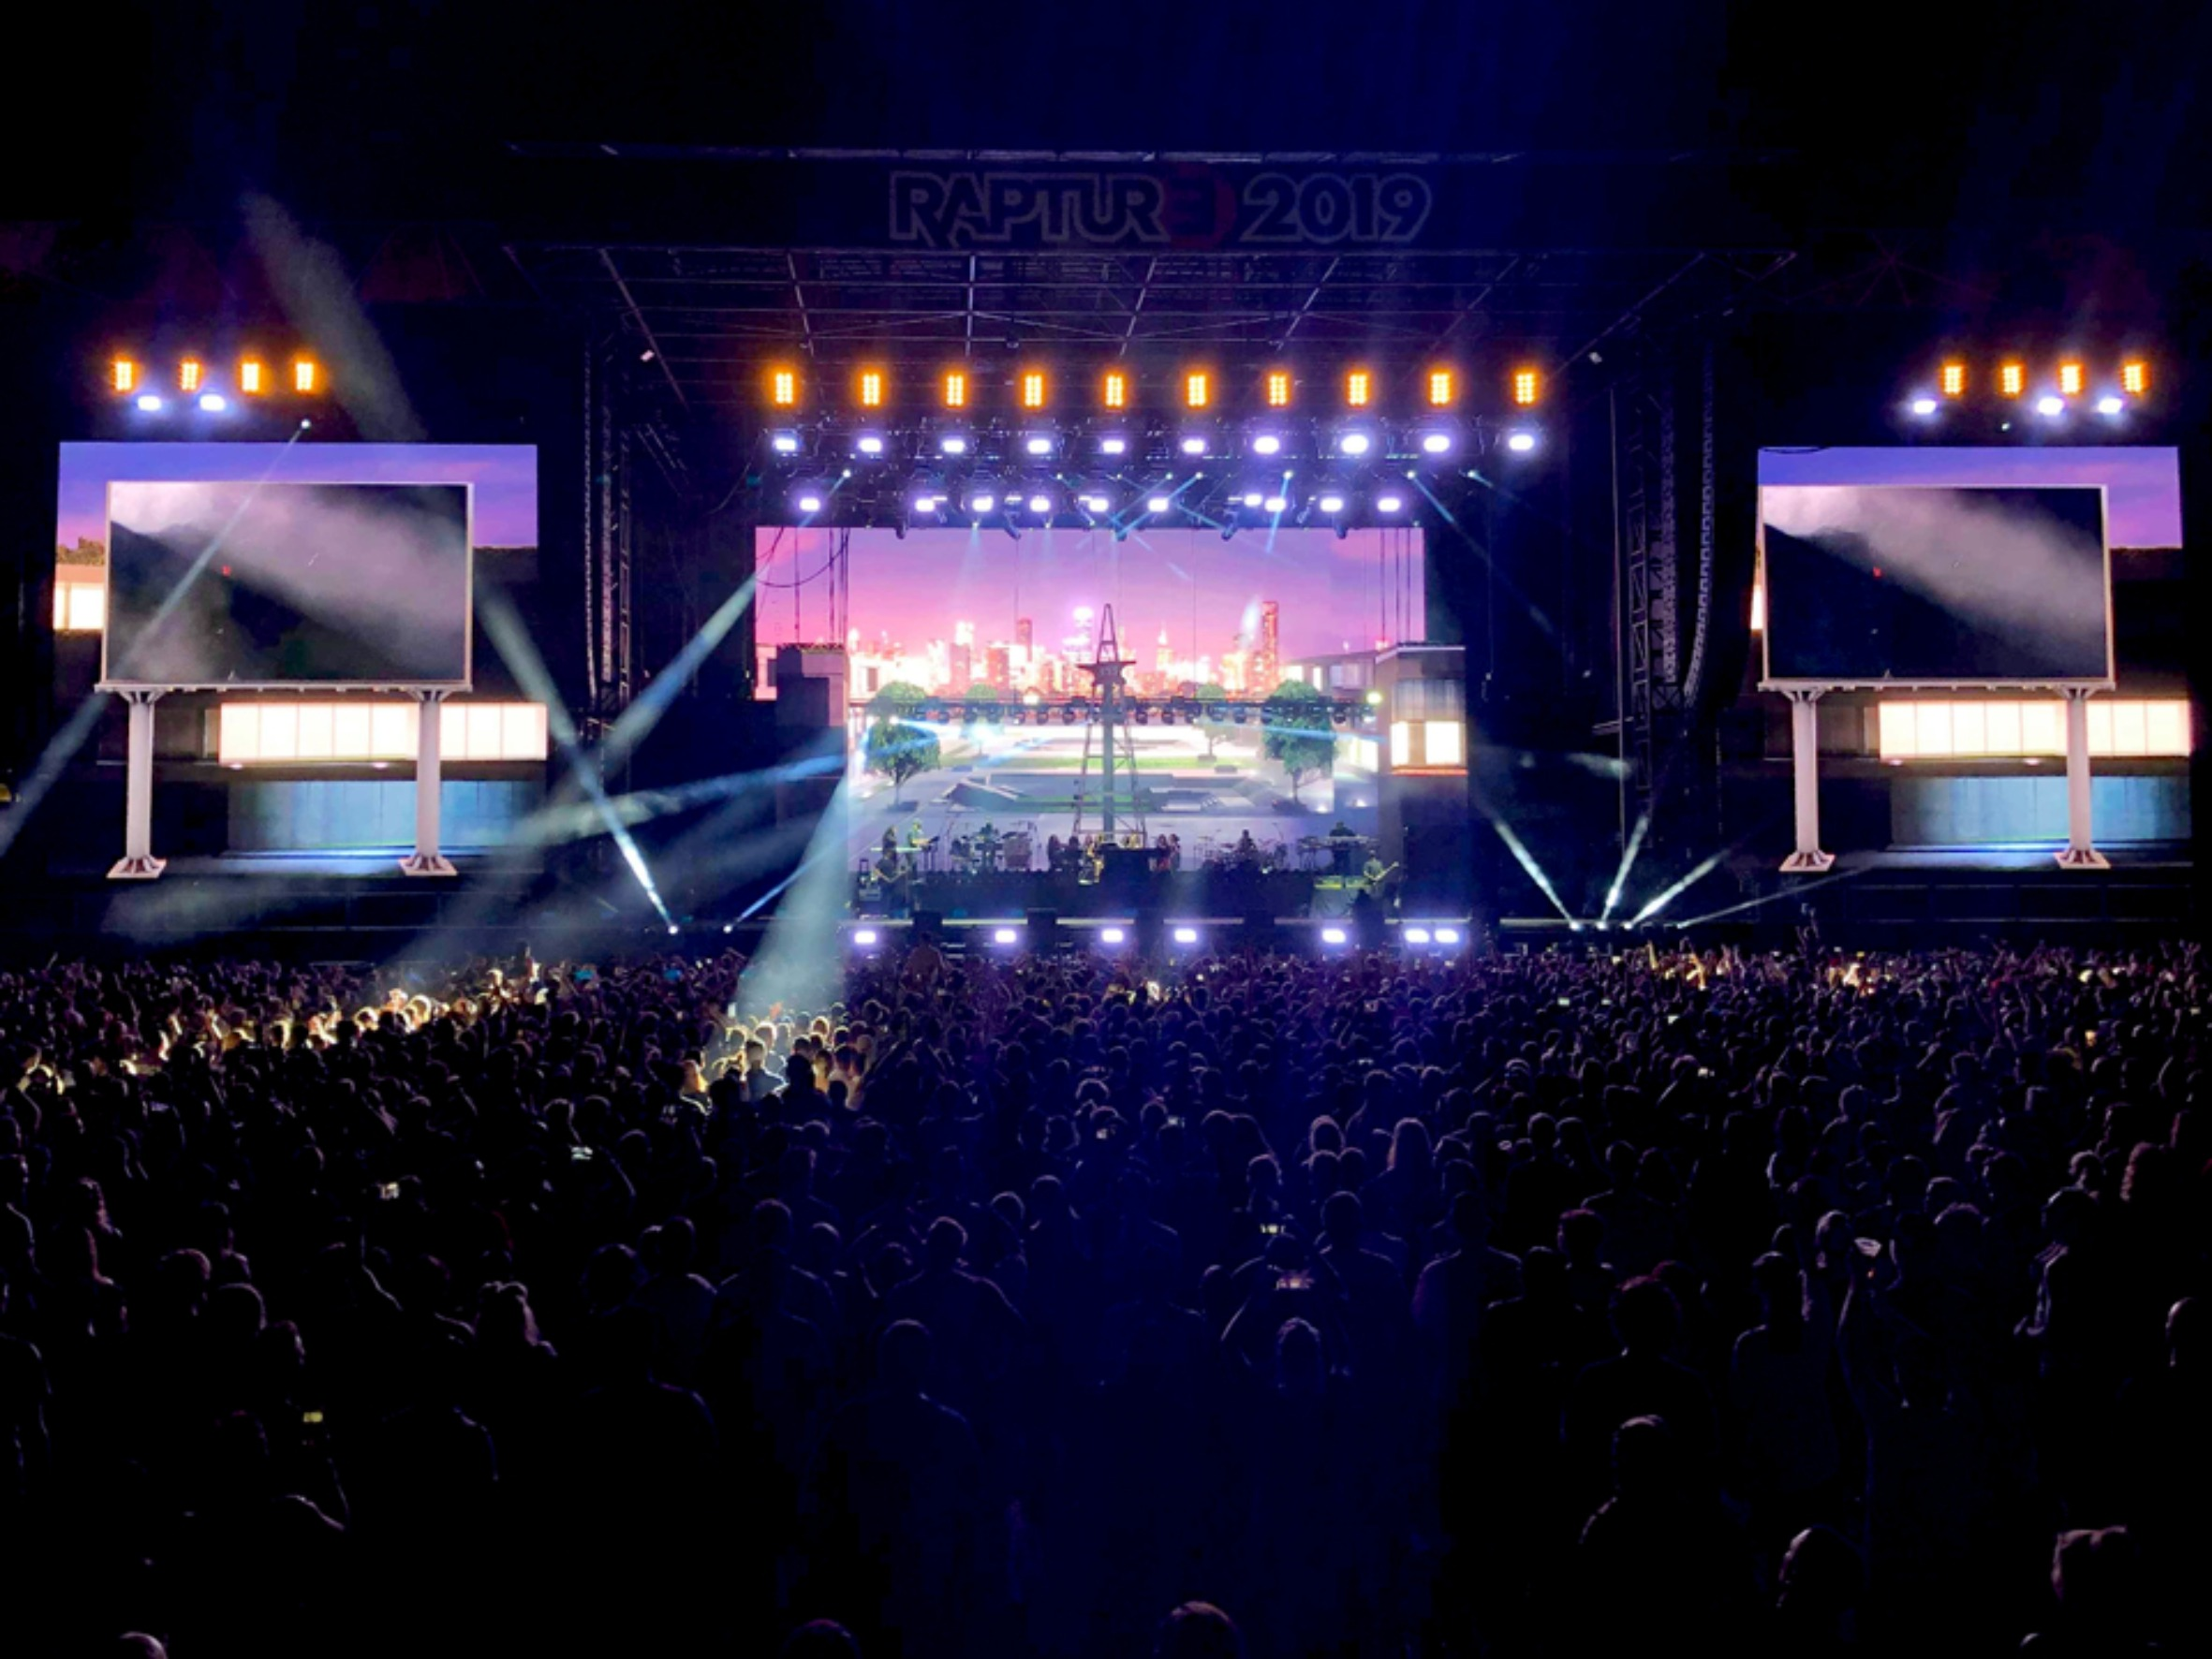 Brompton Technology Creates a Spectacle on the Eminem Rapture Tour | TPi